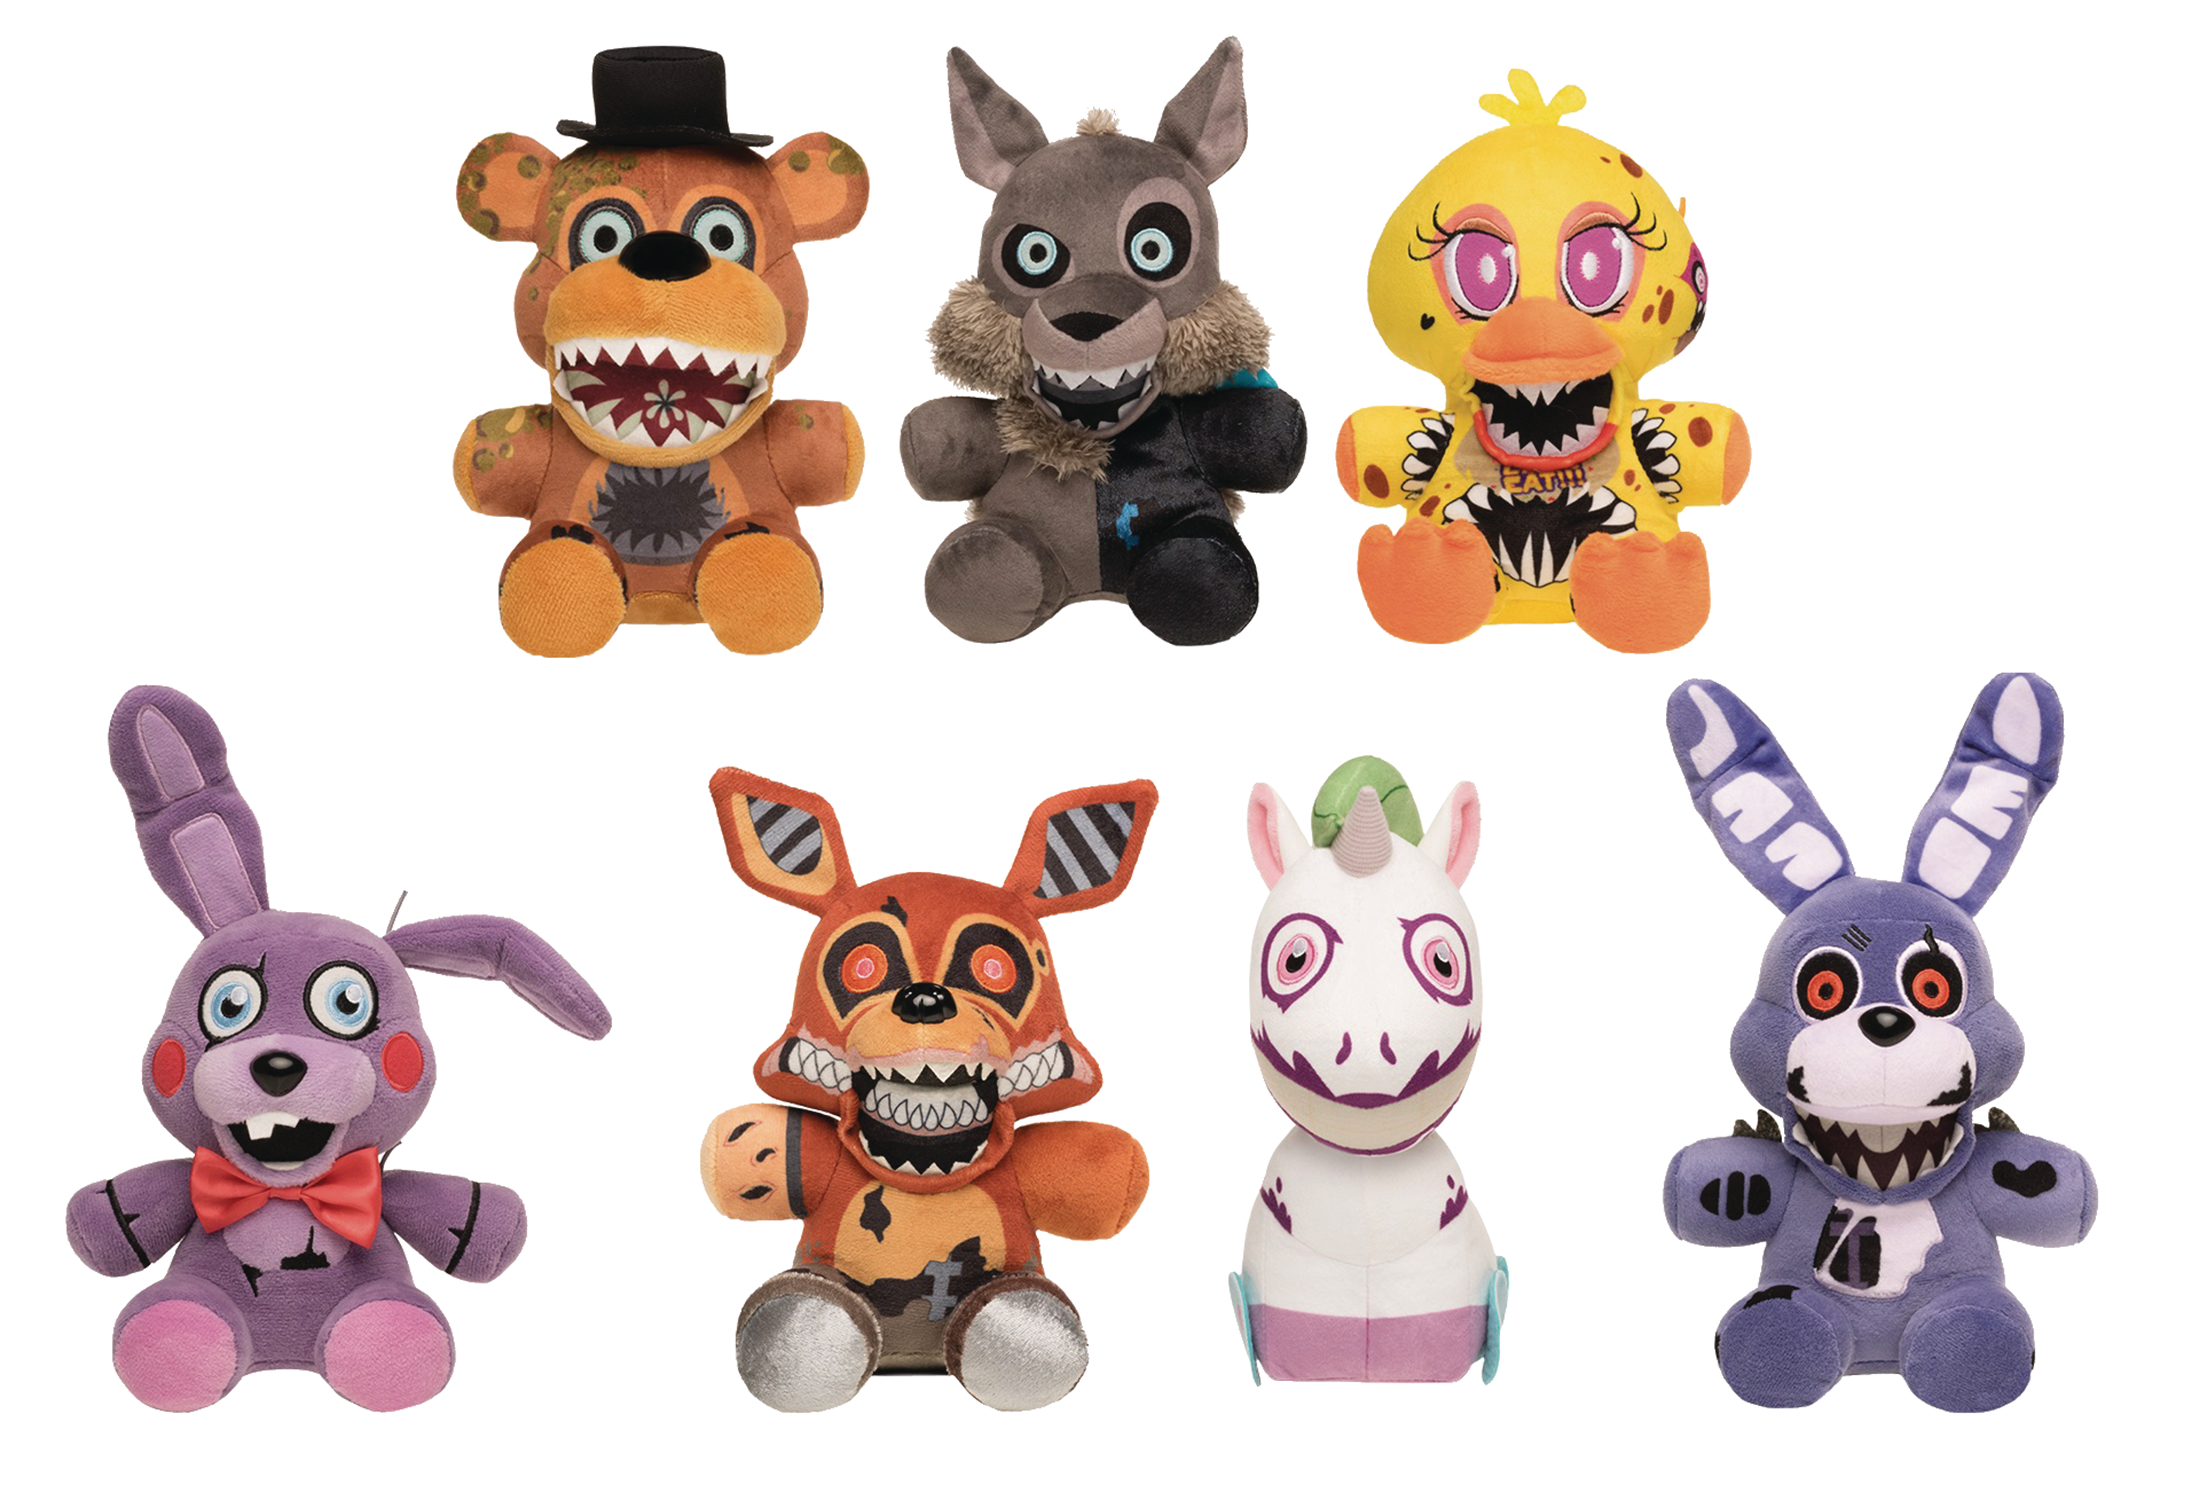 FIVE NIGHTS AT FREDDYS TWISTED ONES 9PC PLUSH FIG DISP